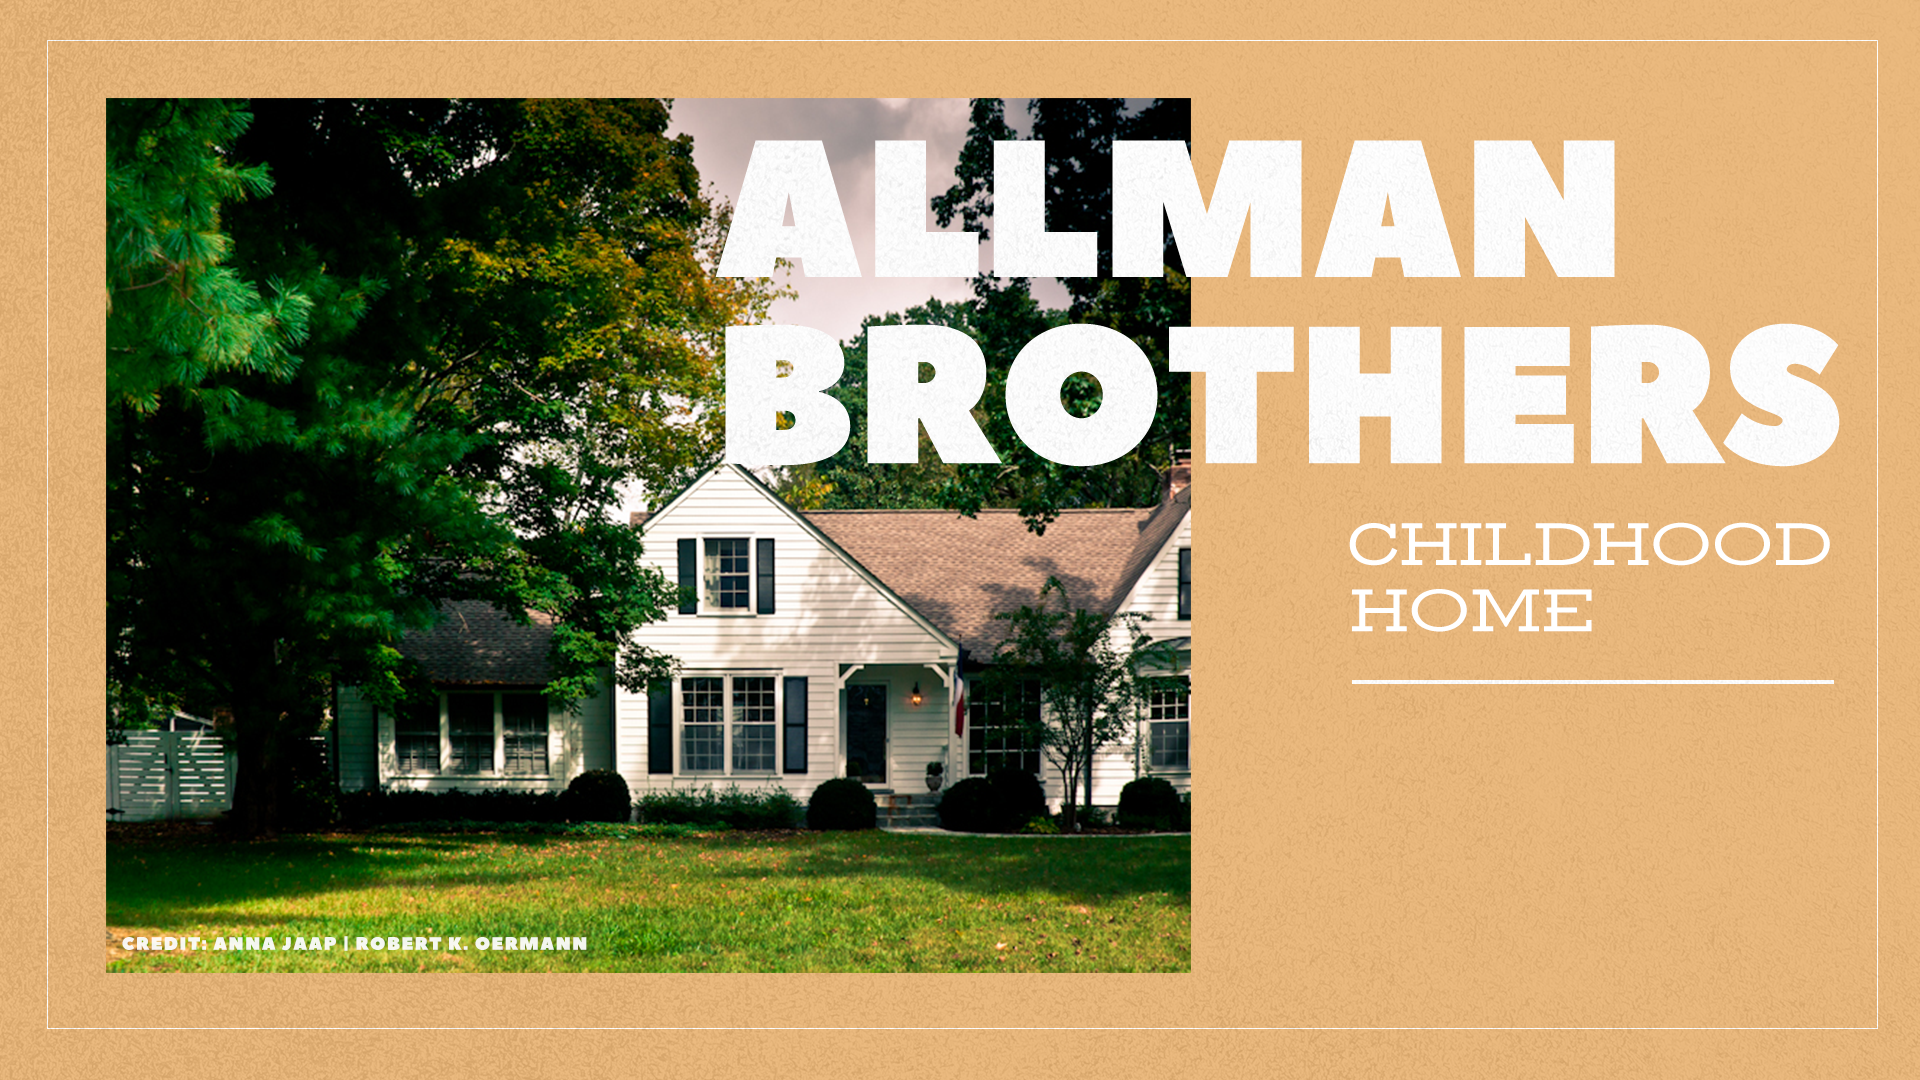 Allman Brothers Childhood Home